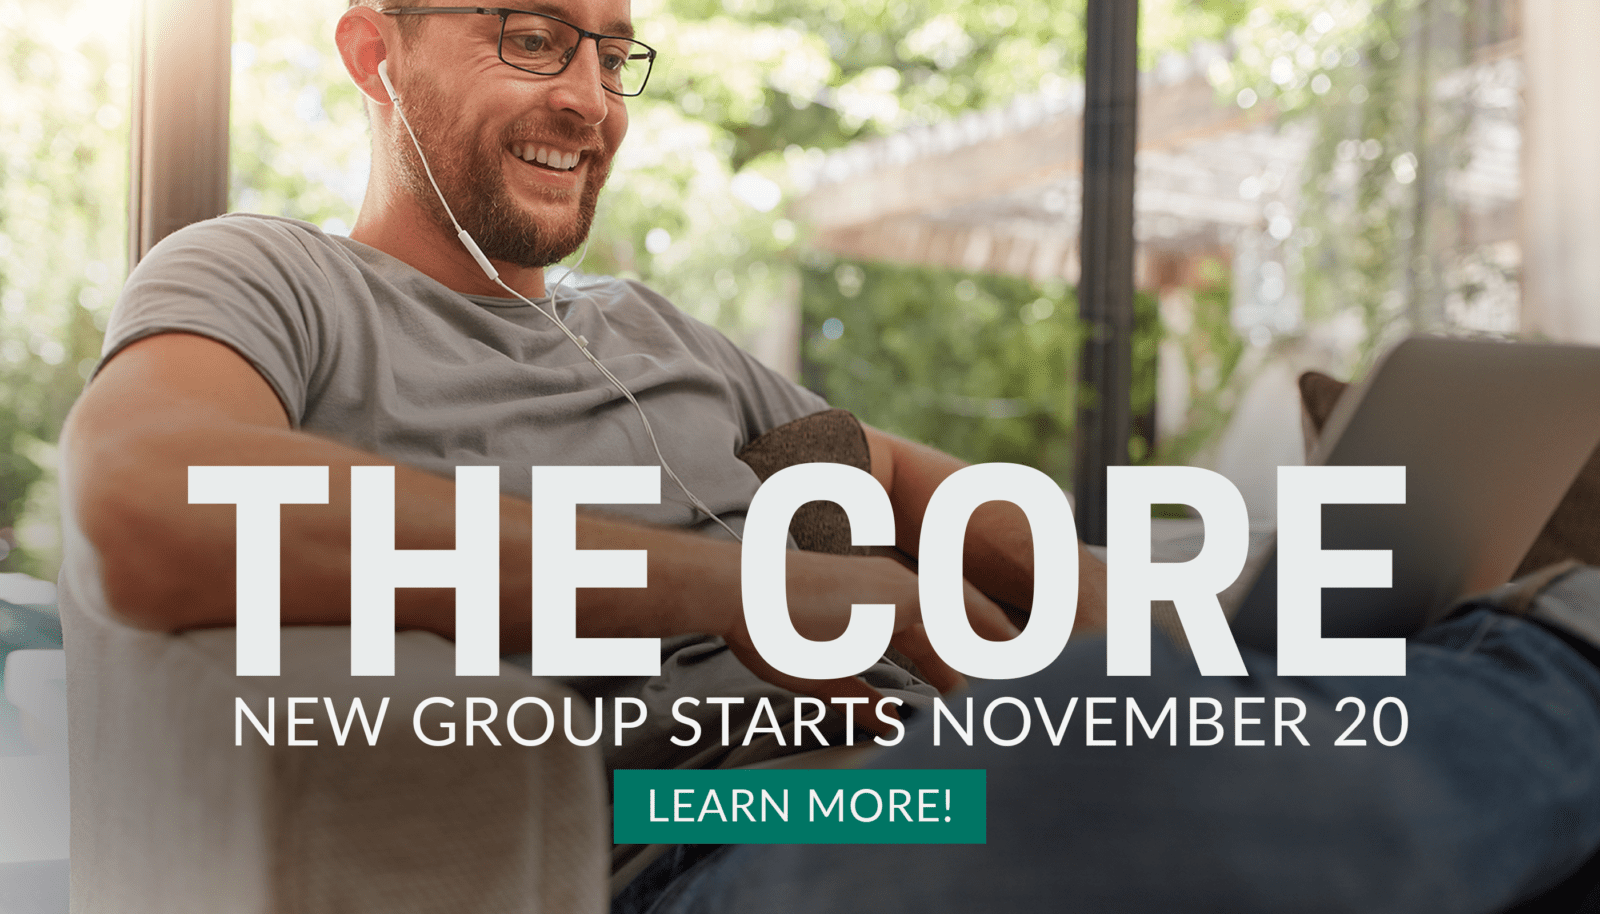 https://marriagerecoverycenter.com/wp-content/uploads/2019/10/The-Core-2019-11-20.png